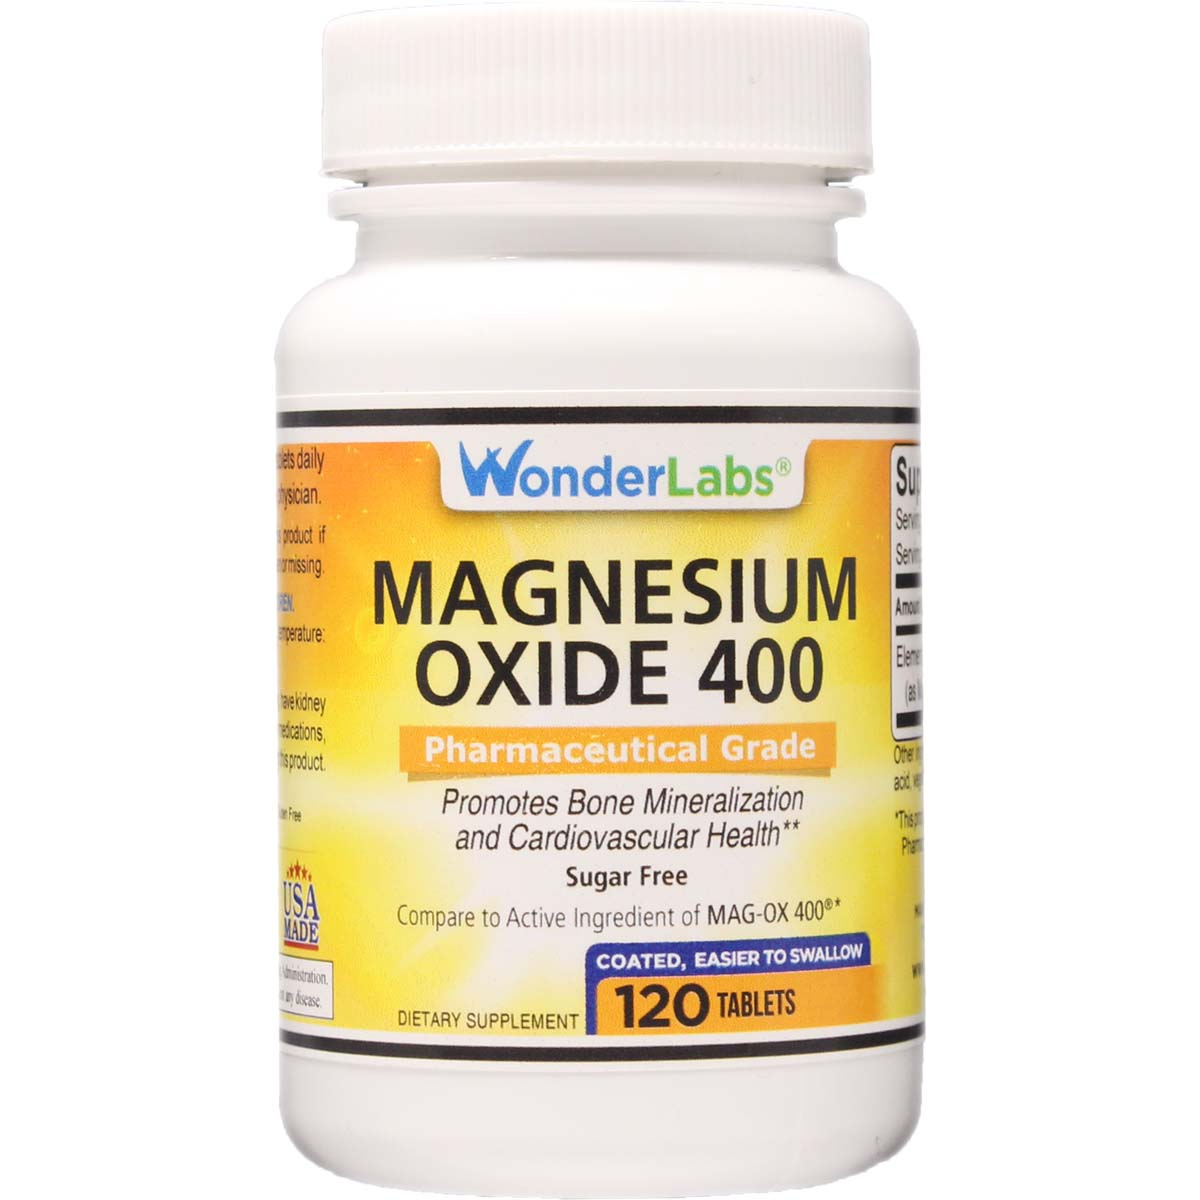 Magnesium Oxide Uses : Magnesium oxide pharmaceutical grade tablets